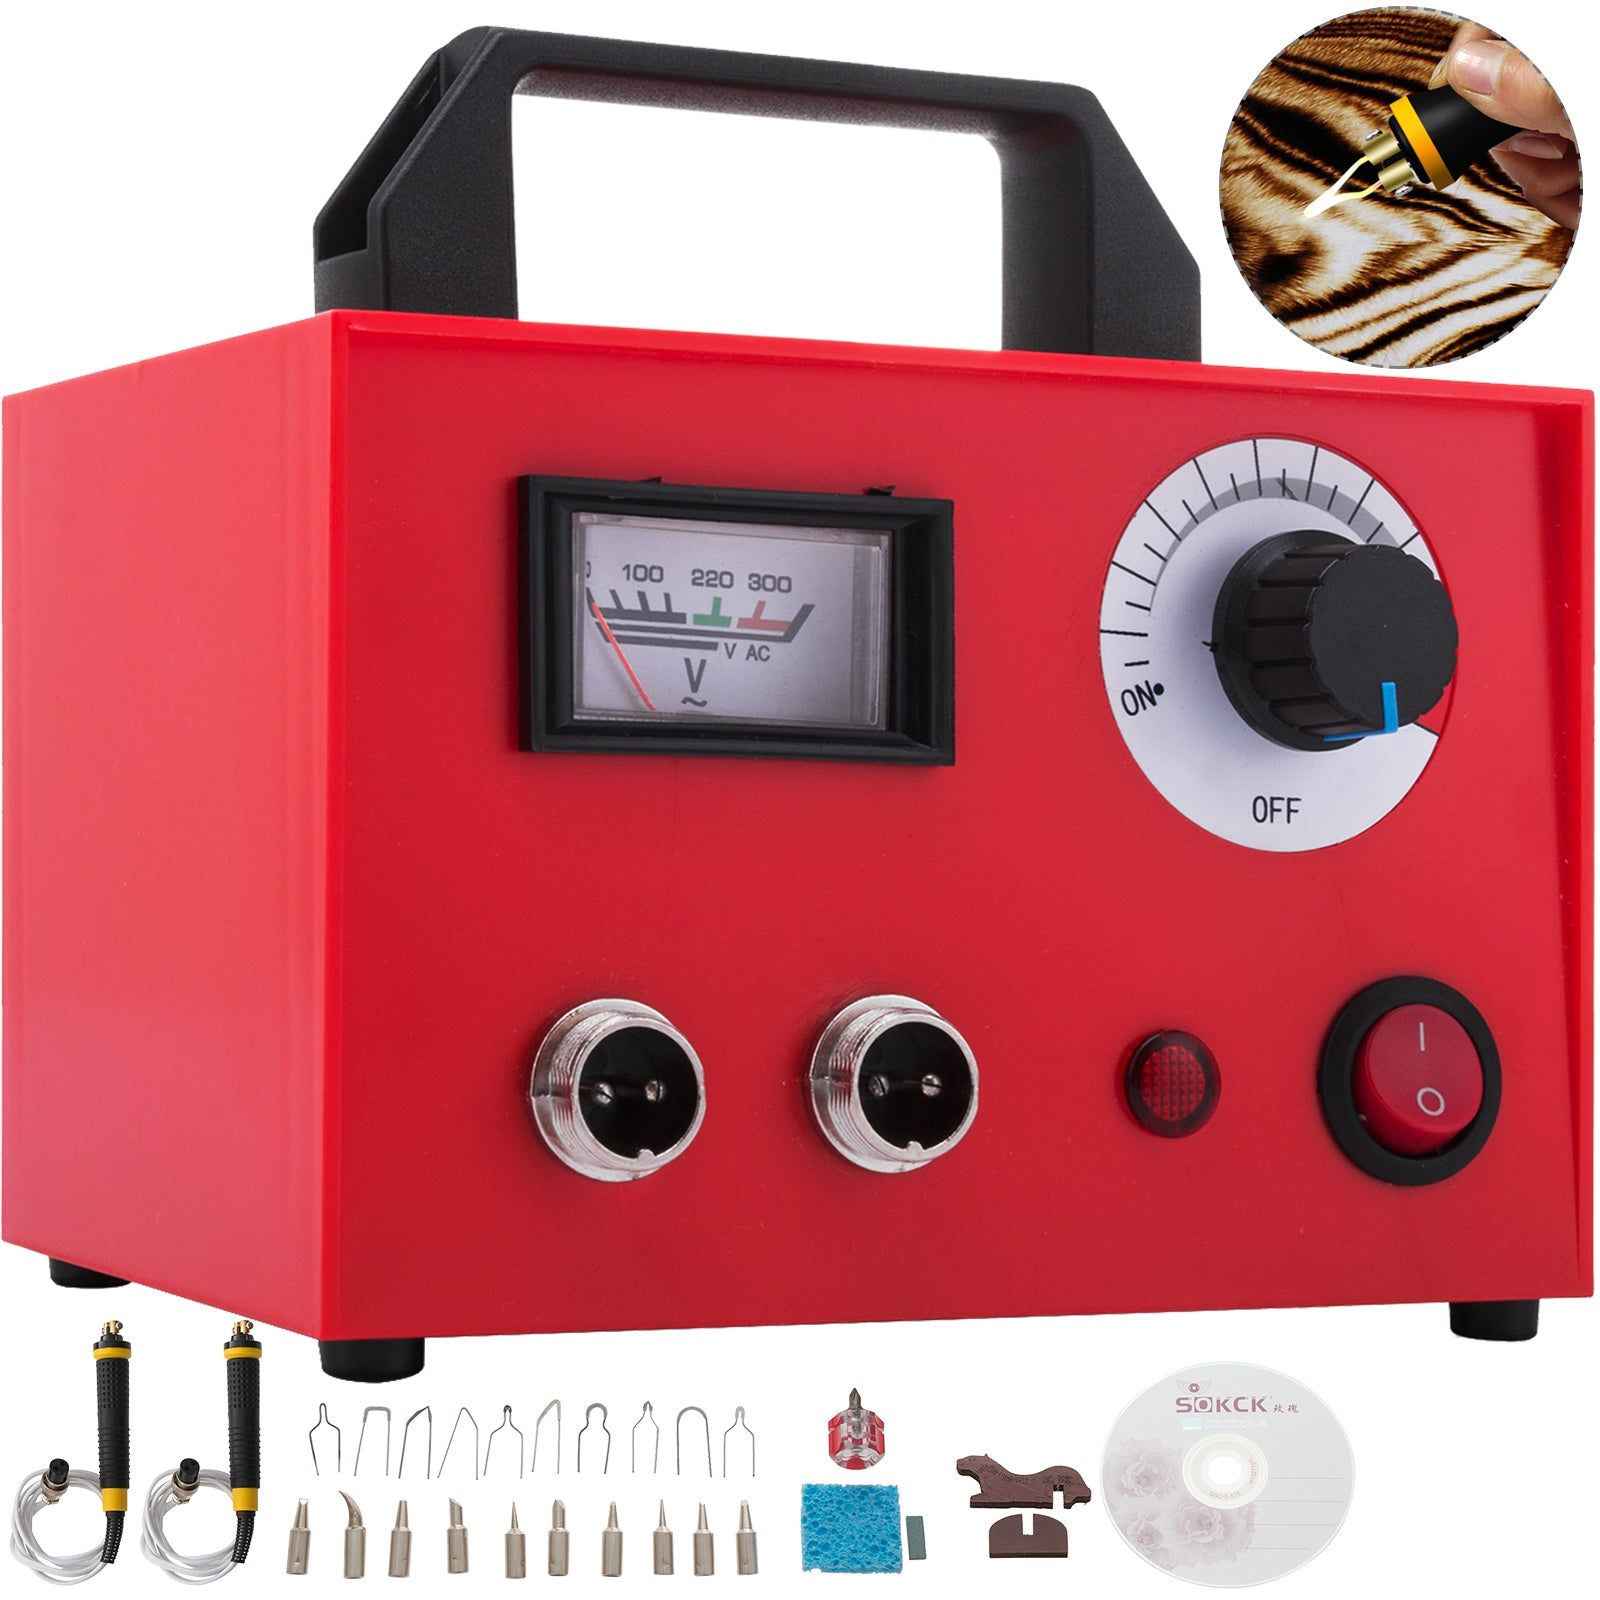 110v 100w Laser Wood Burning Pyrography Machine Abs Shell Gourd Pointer Display